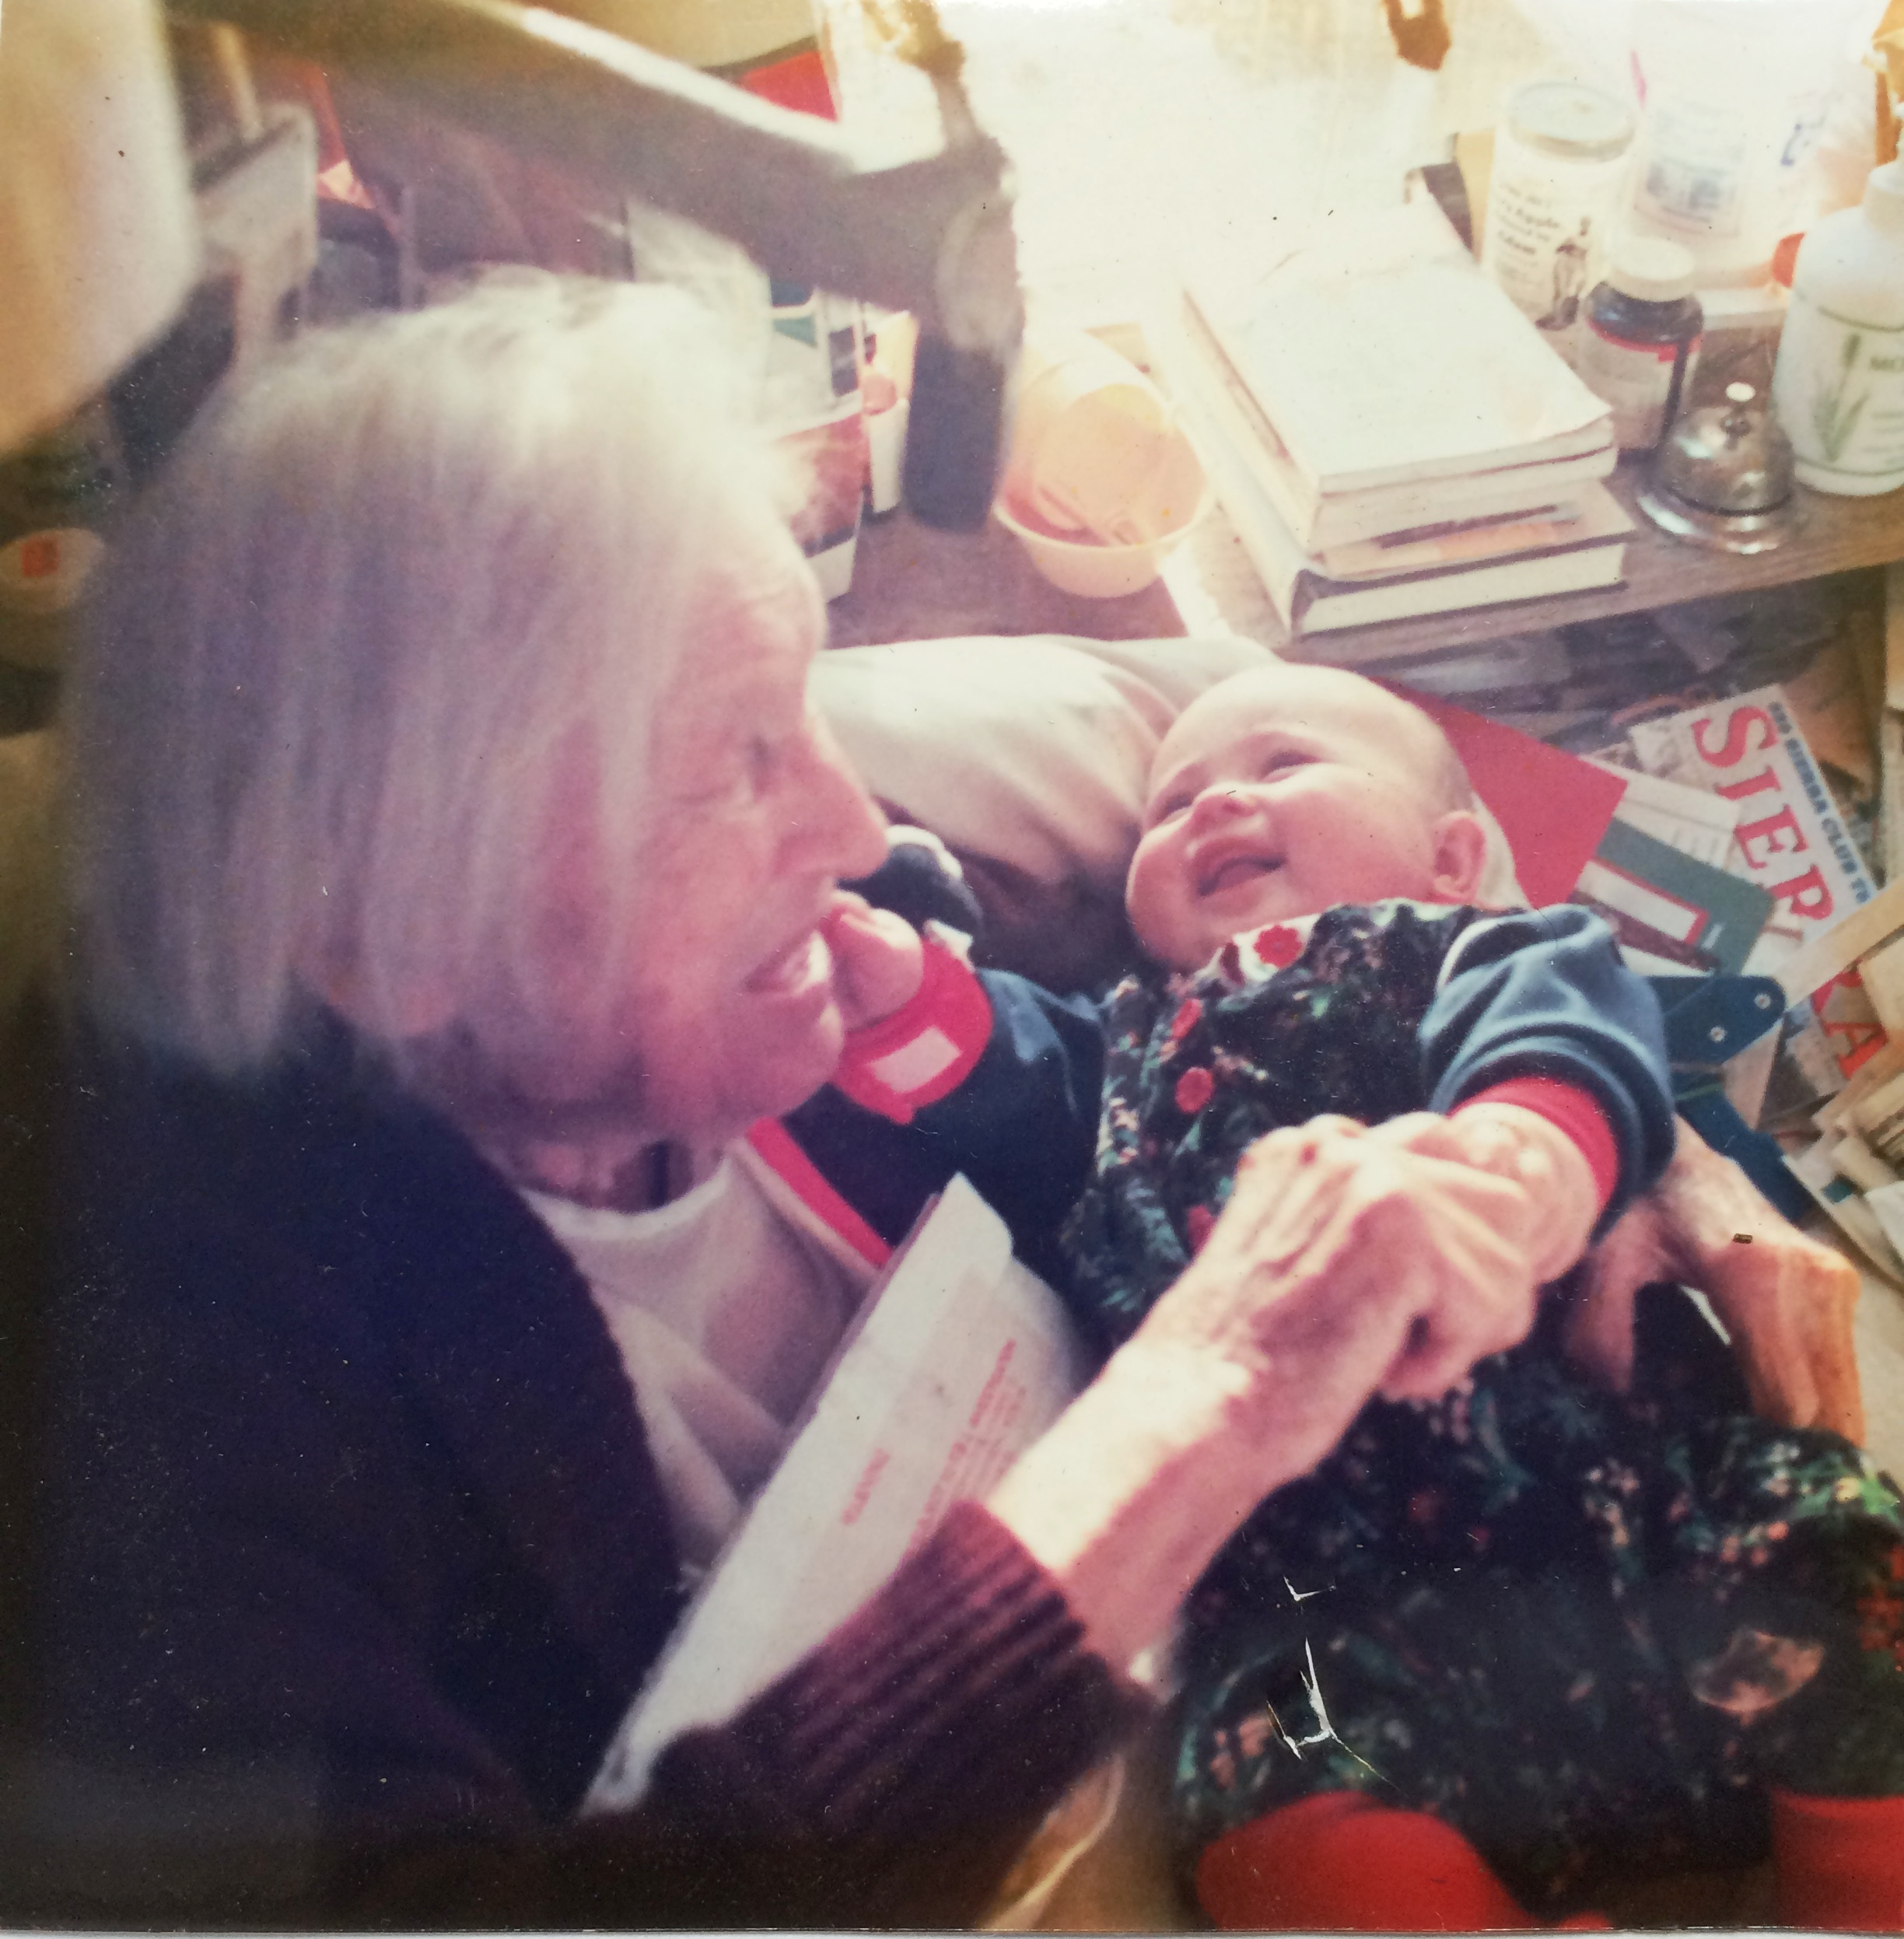 AGNES BARON with Meira Heckman, the author's daughter, at Meher Mount. (Photo: Heckman Family.)